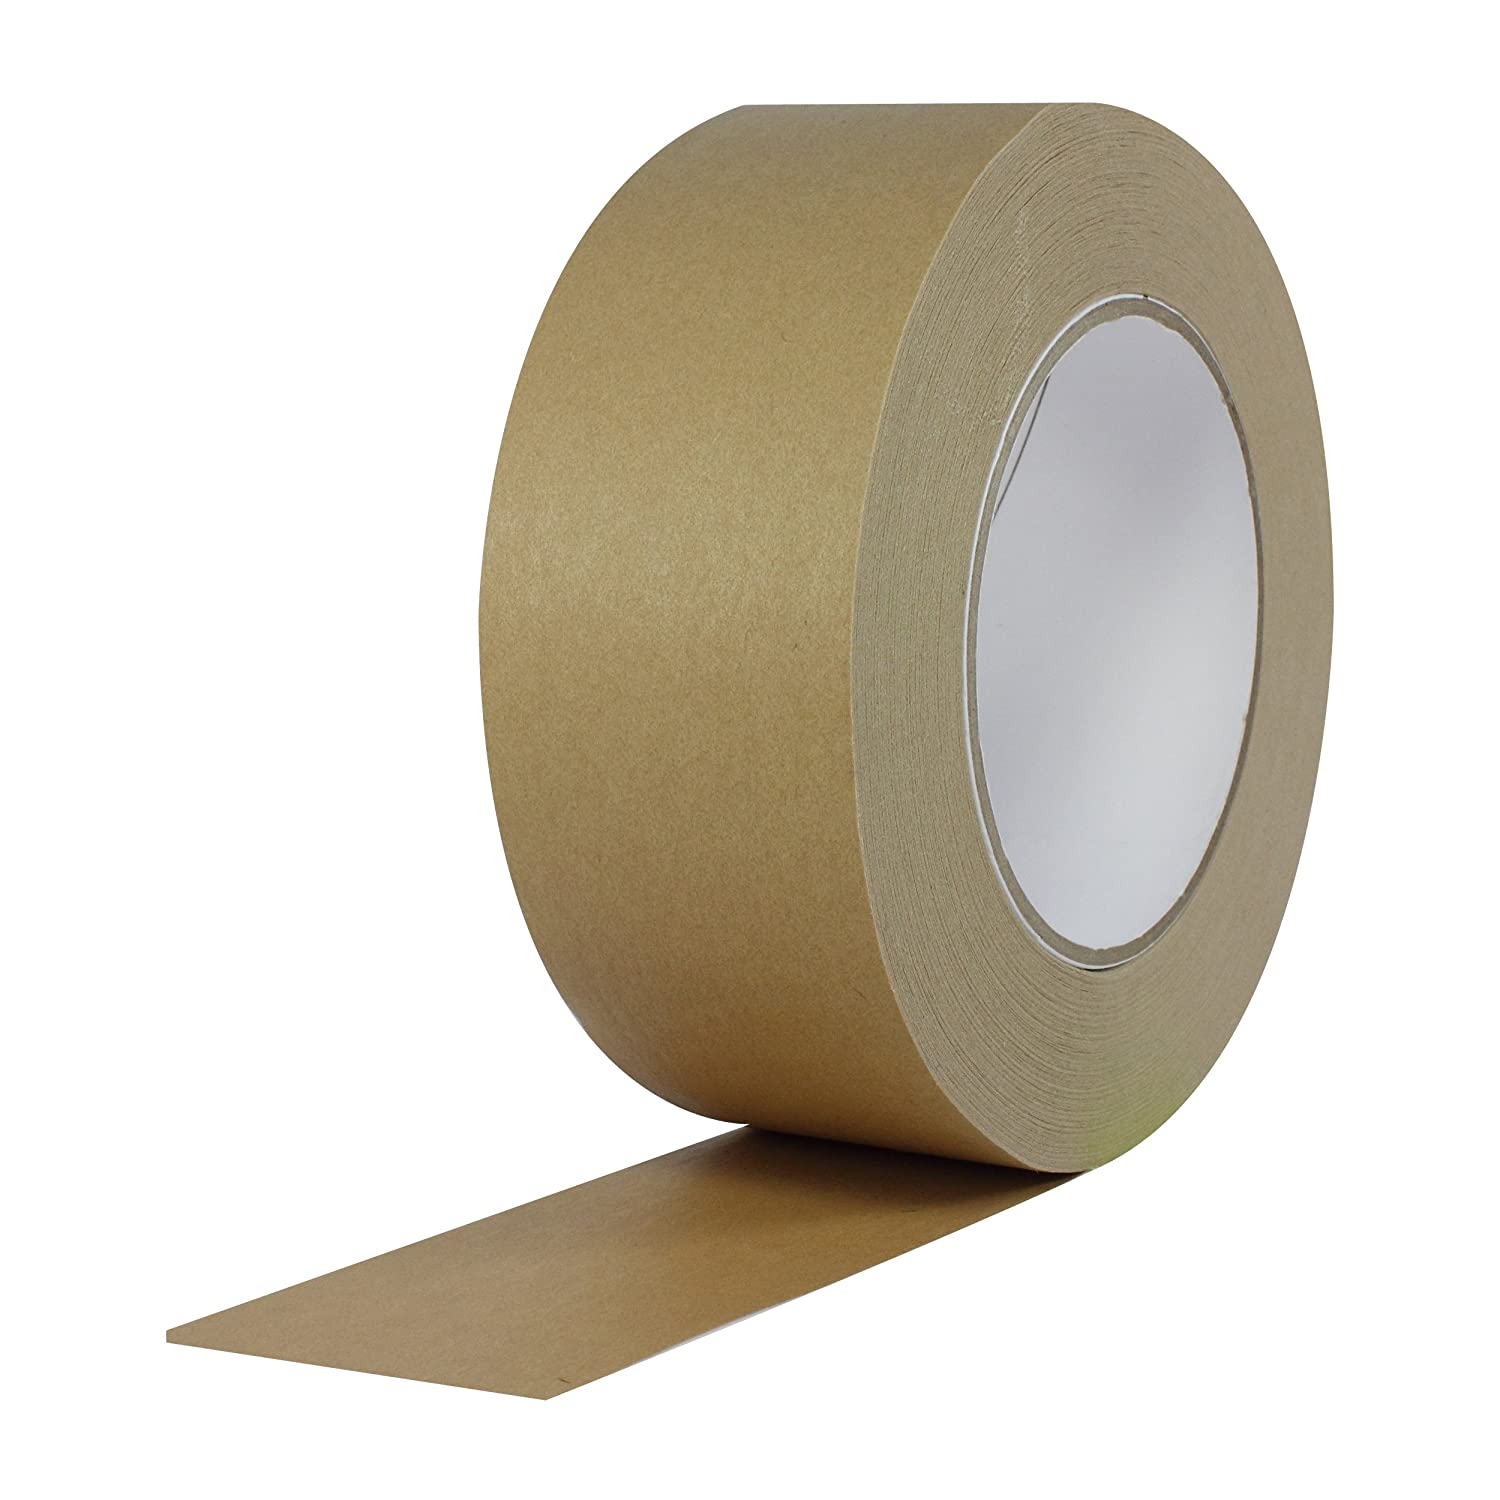 ProTapes Pro 183 Rubber Paper Carton Sealing Tape, 7.1 mils Thick, 55 yds Length x 2' Width, For Light-to-Medium Packaging, Light Brown (Pack of 1) 55 yds Length x 2 Width ProTapes & Specialties Pro-183-2x55-LBR